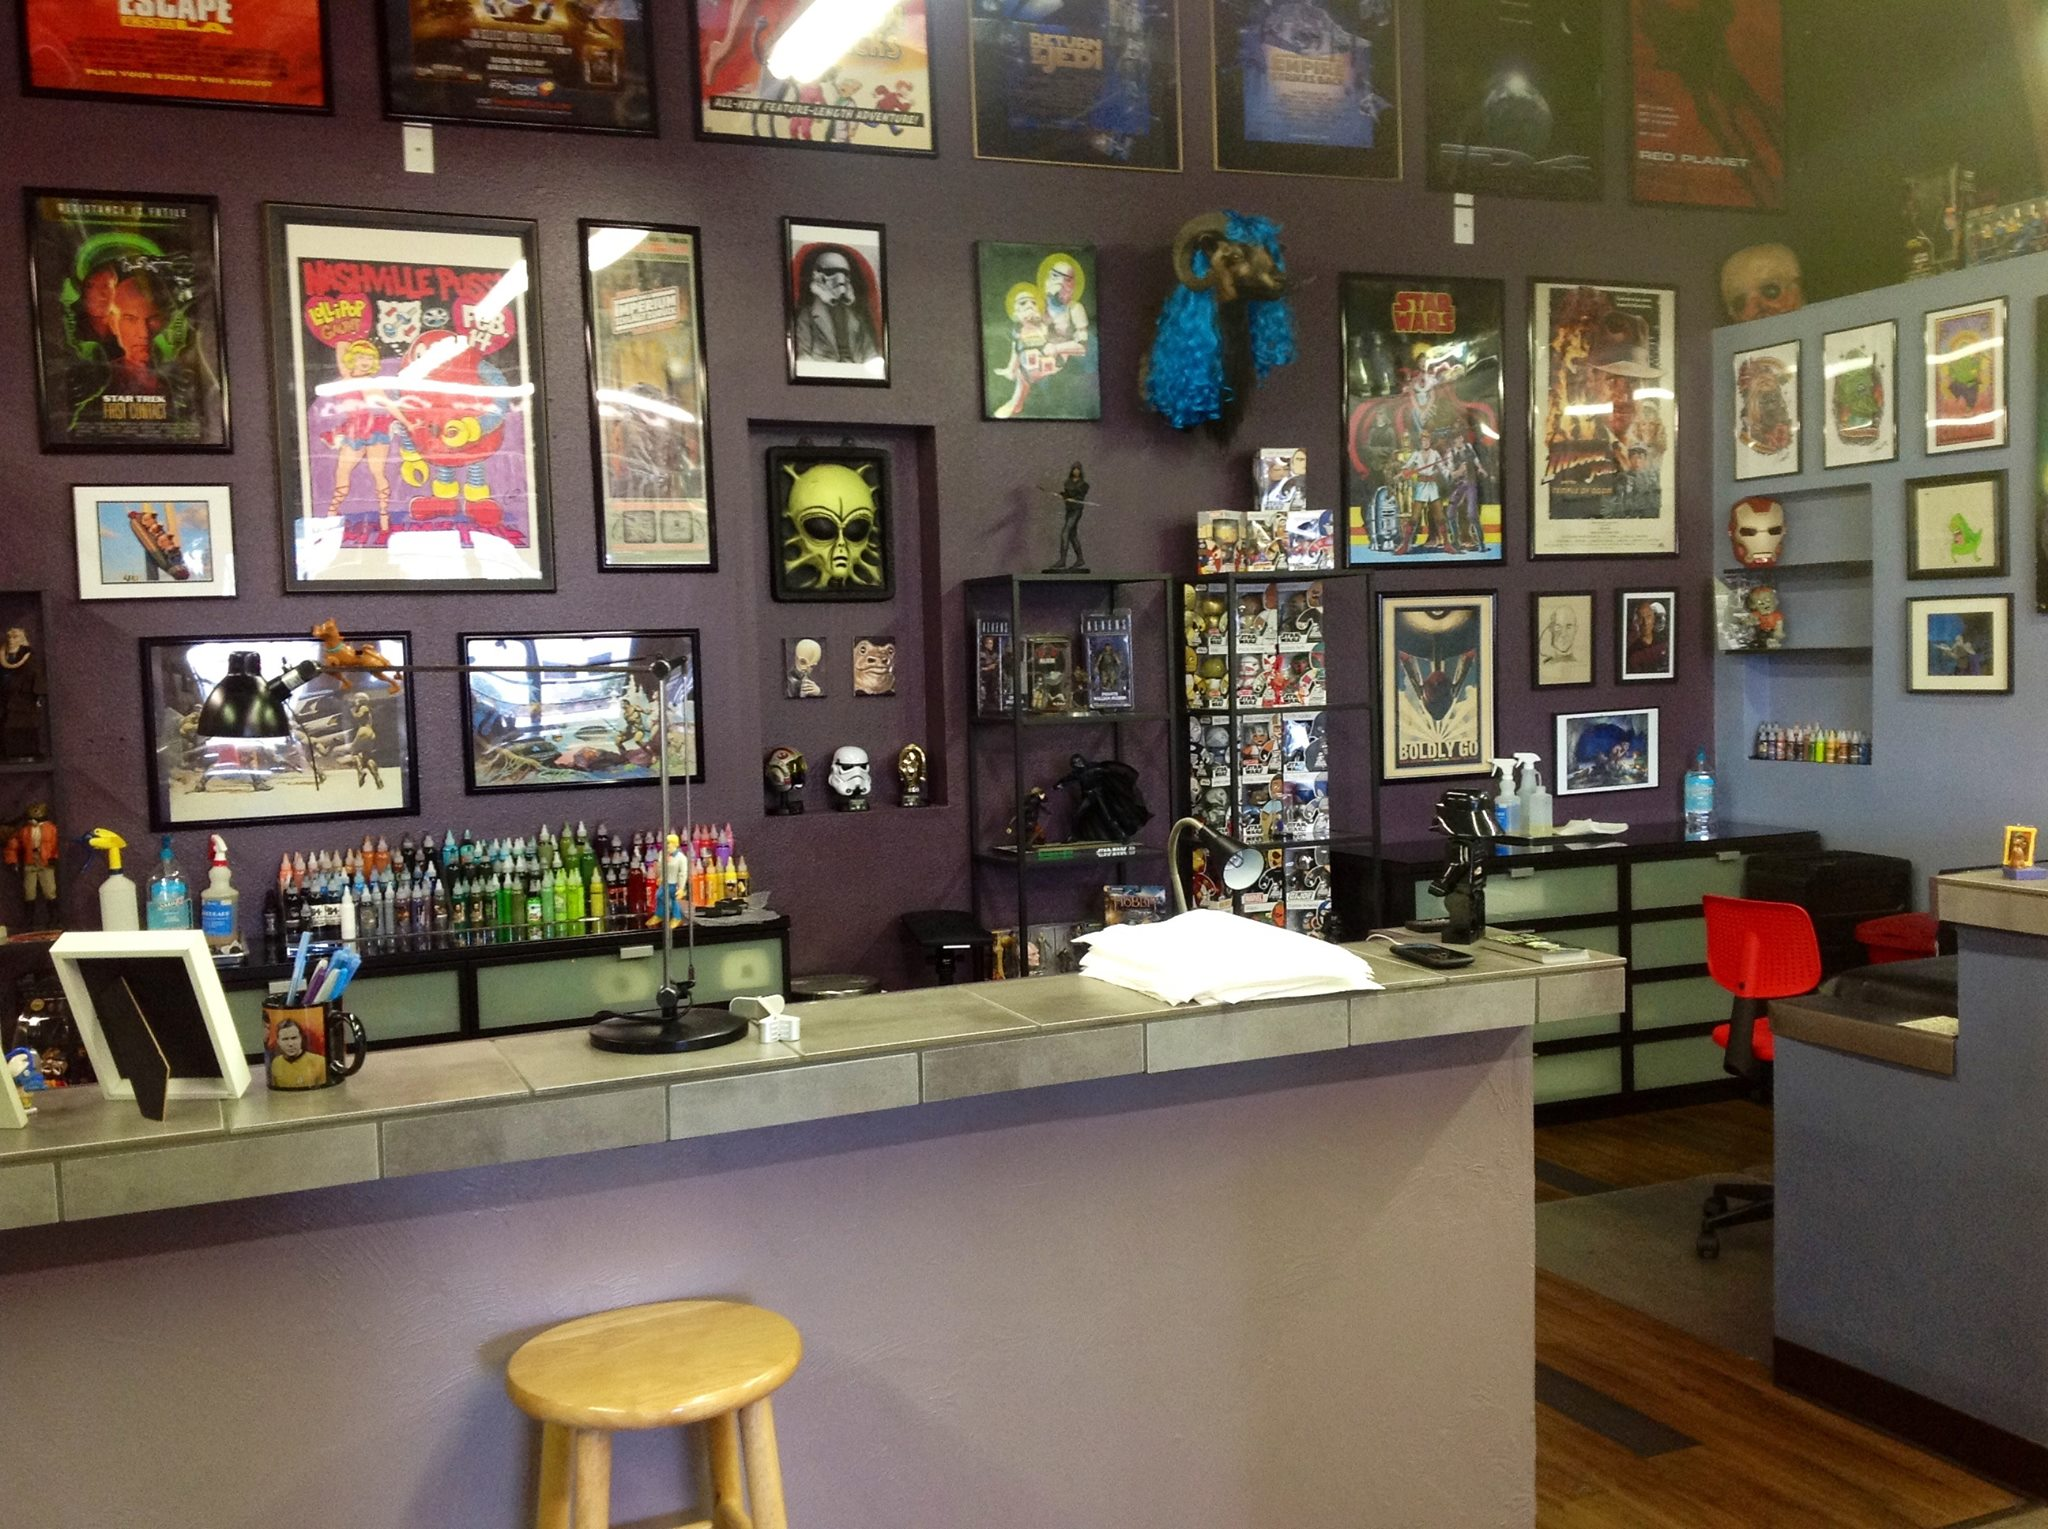 Tattoo Studio: Where Is The Area 51 Tattoo Studio From A&E's Epic Ink